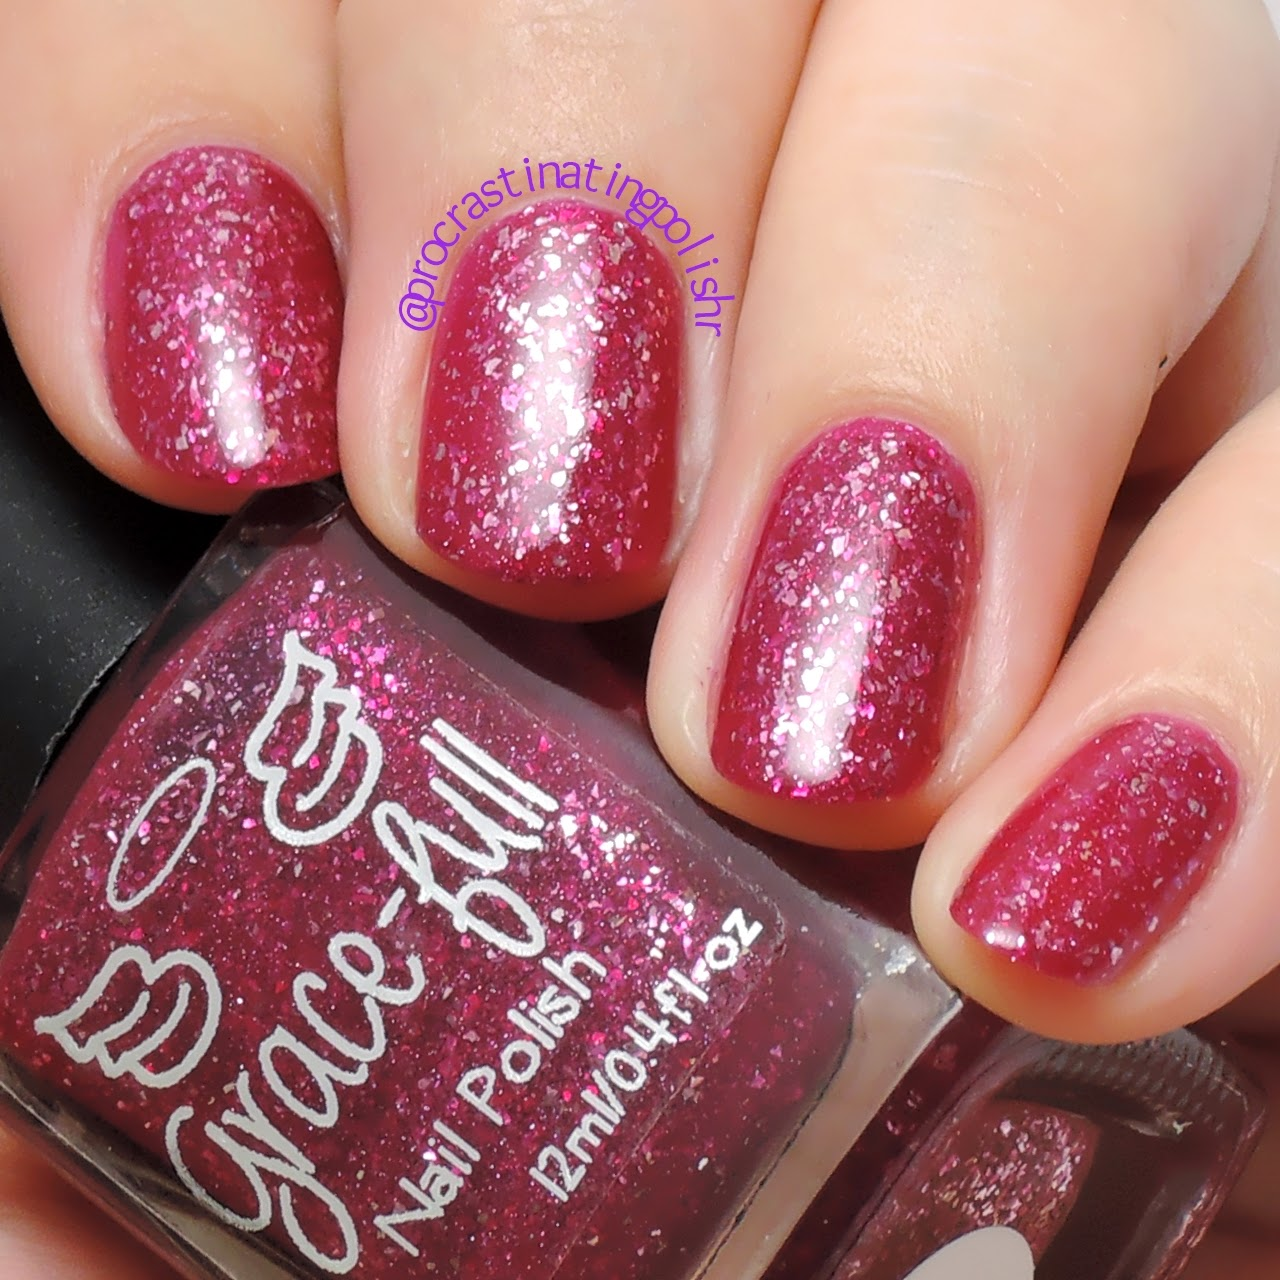 Grace-full Nail Polish - Love Sparkles | Valentine's Day Duo